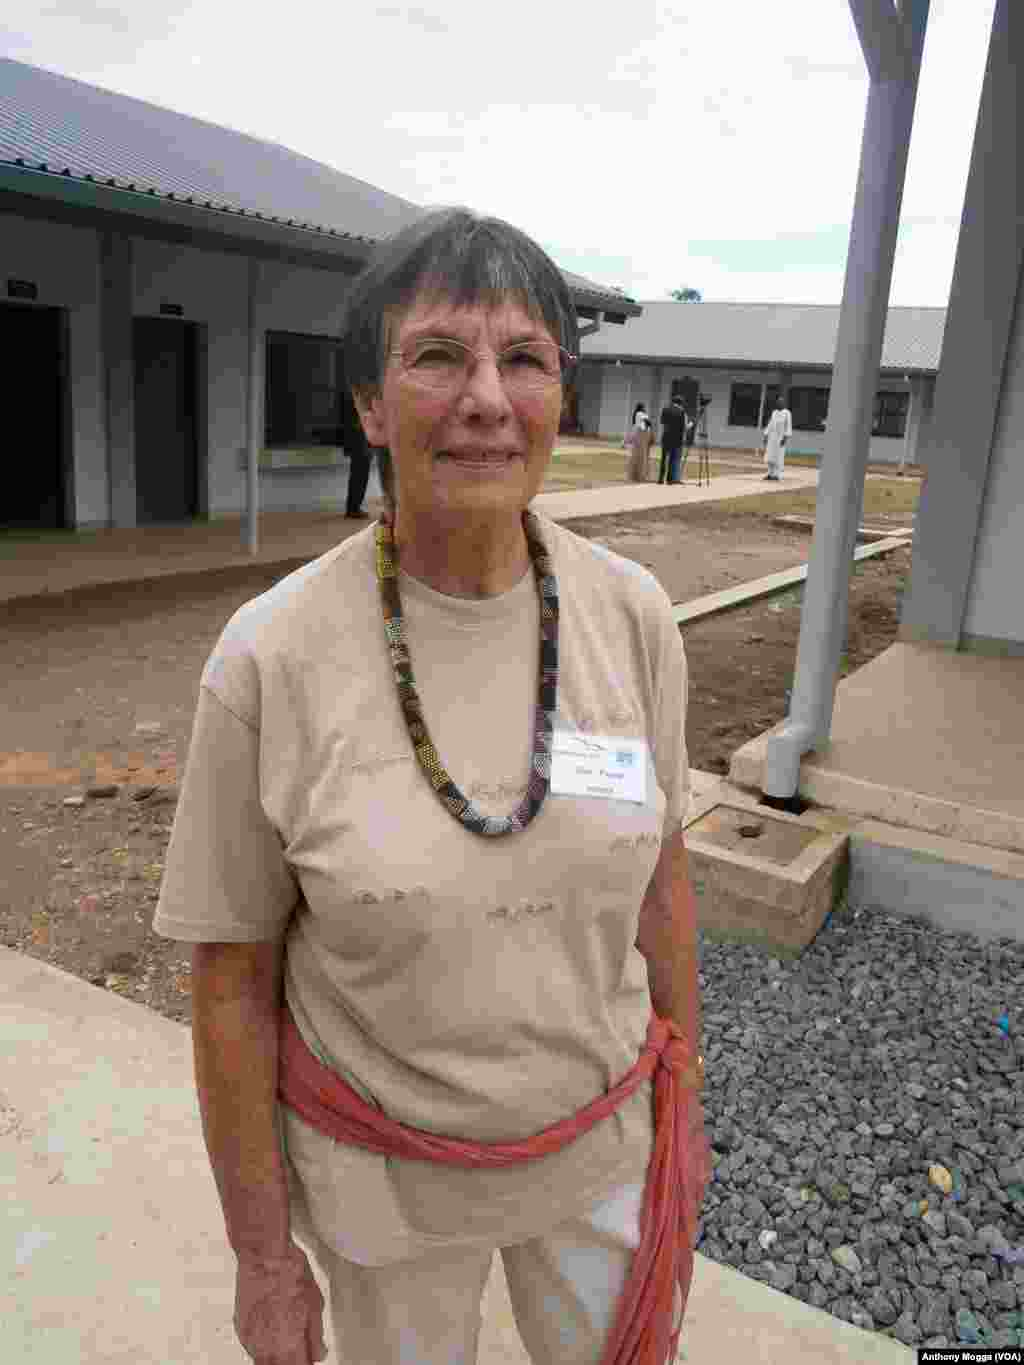 Ginn Fourie attended a peace organizers training event in Juba, to share her experience of reconciliation in South Africa.